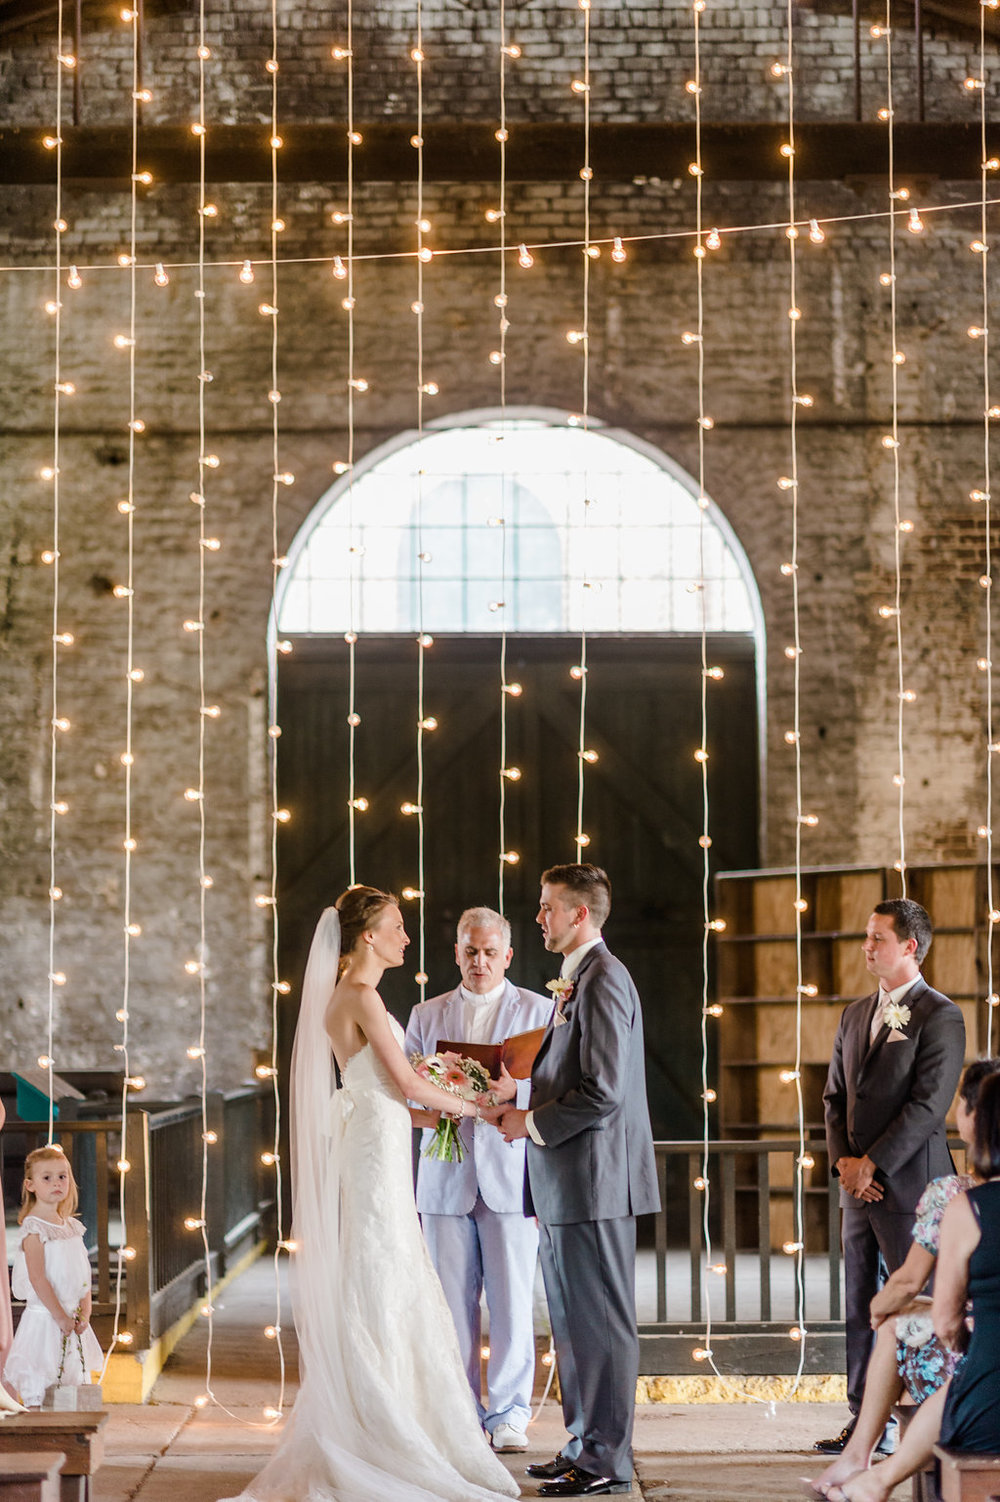 rach-lea-photography-rach-loves-troy-roundhouse-railroad-museum-wedding-ivory-and-beau-savannah-wedding-planner-savannah-weddings-savannah-florist-ivory-and-beau-bridal-boutique-succulent-blush-wedding-33.jpg